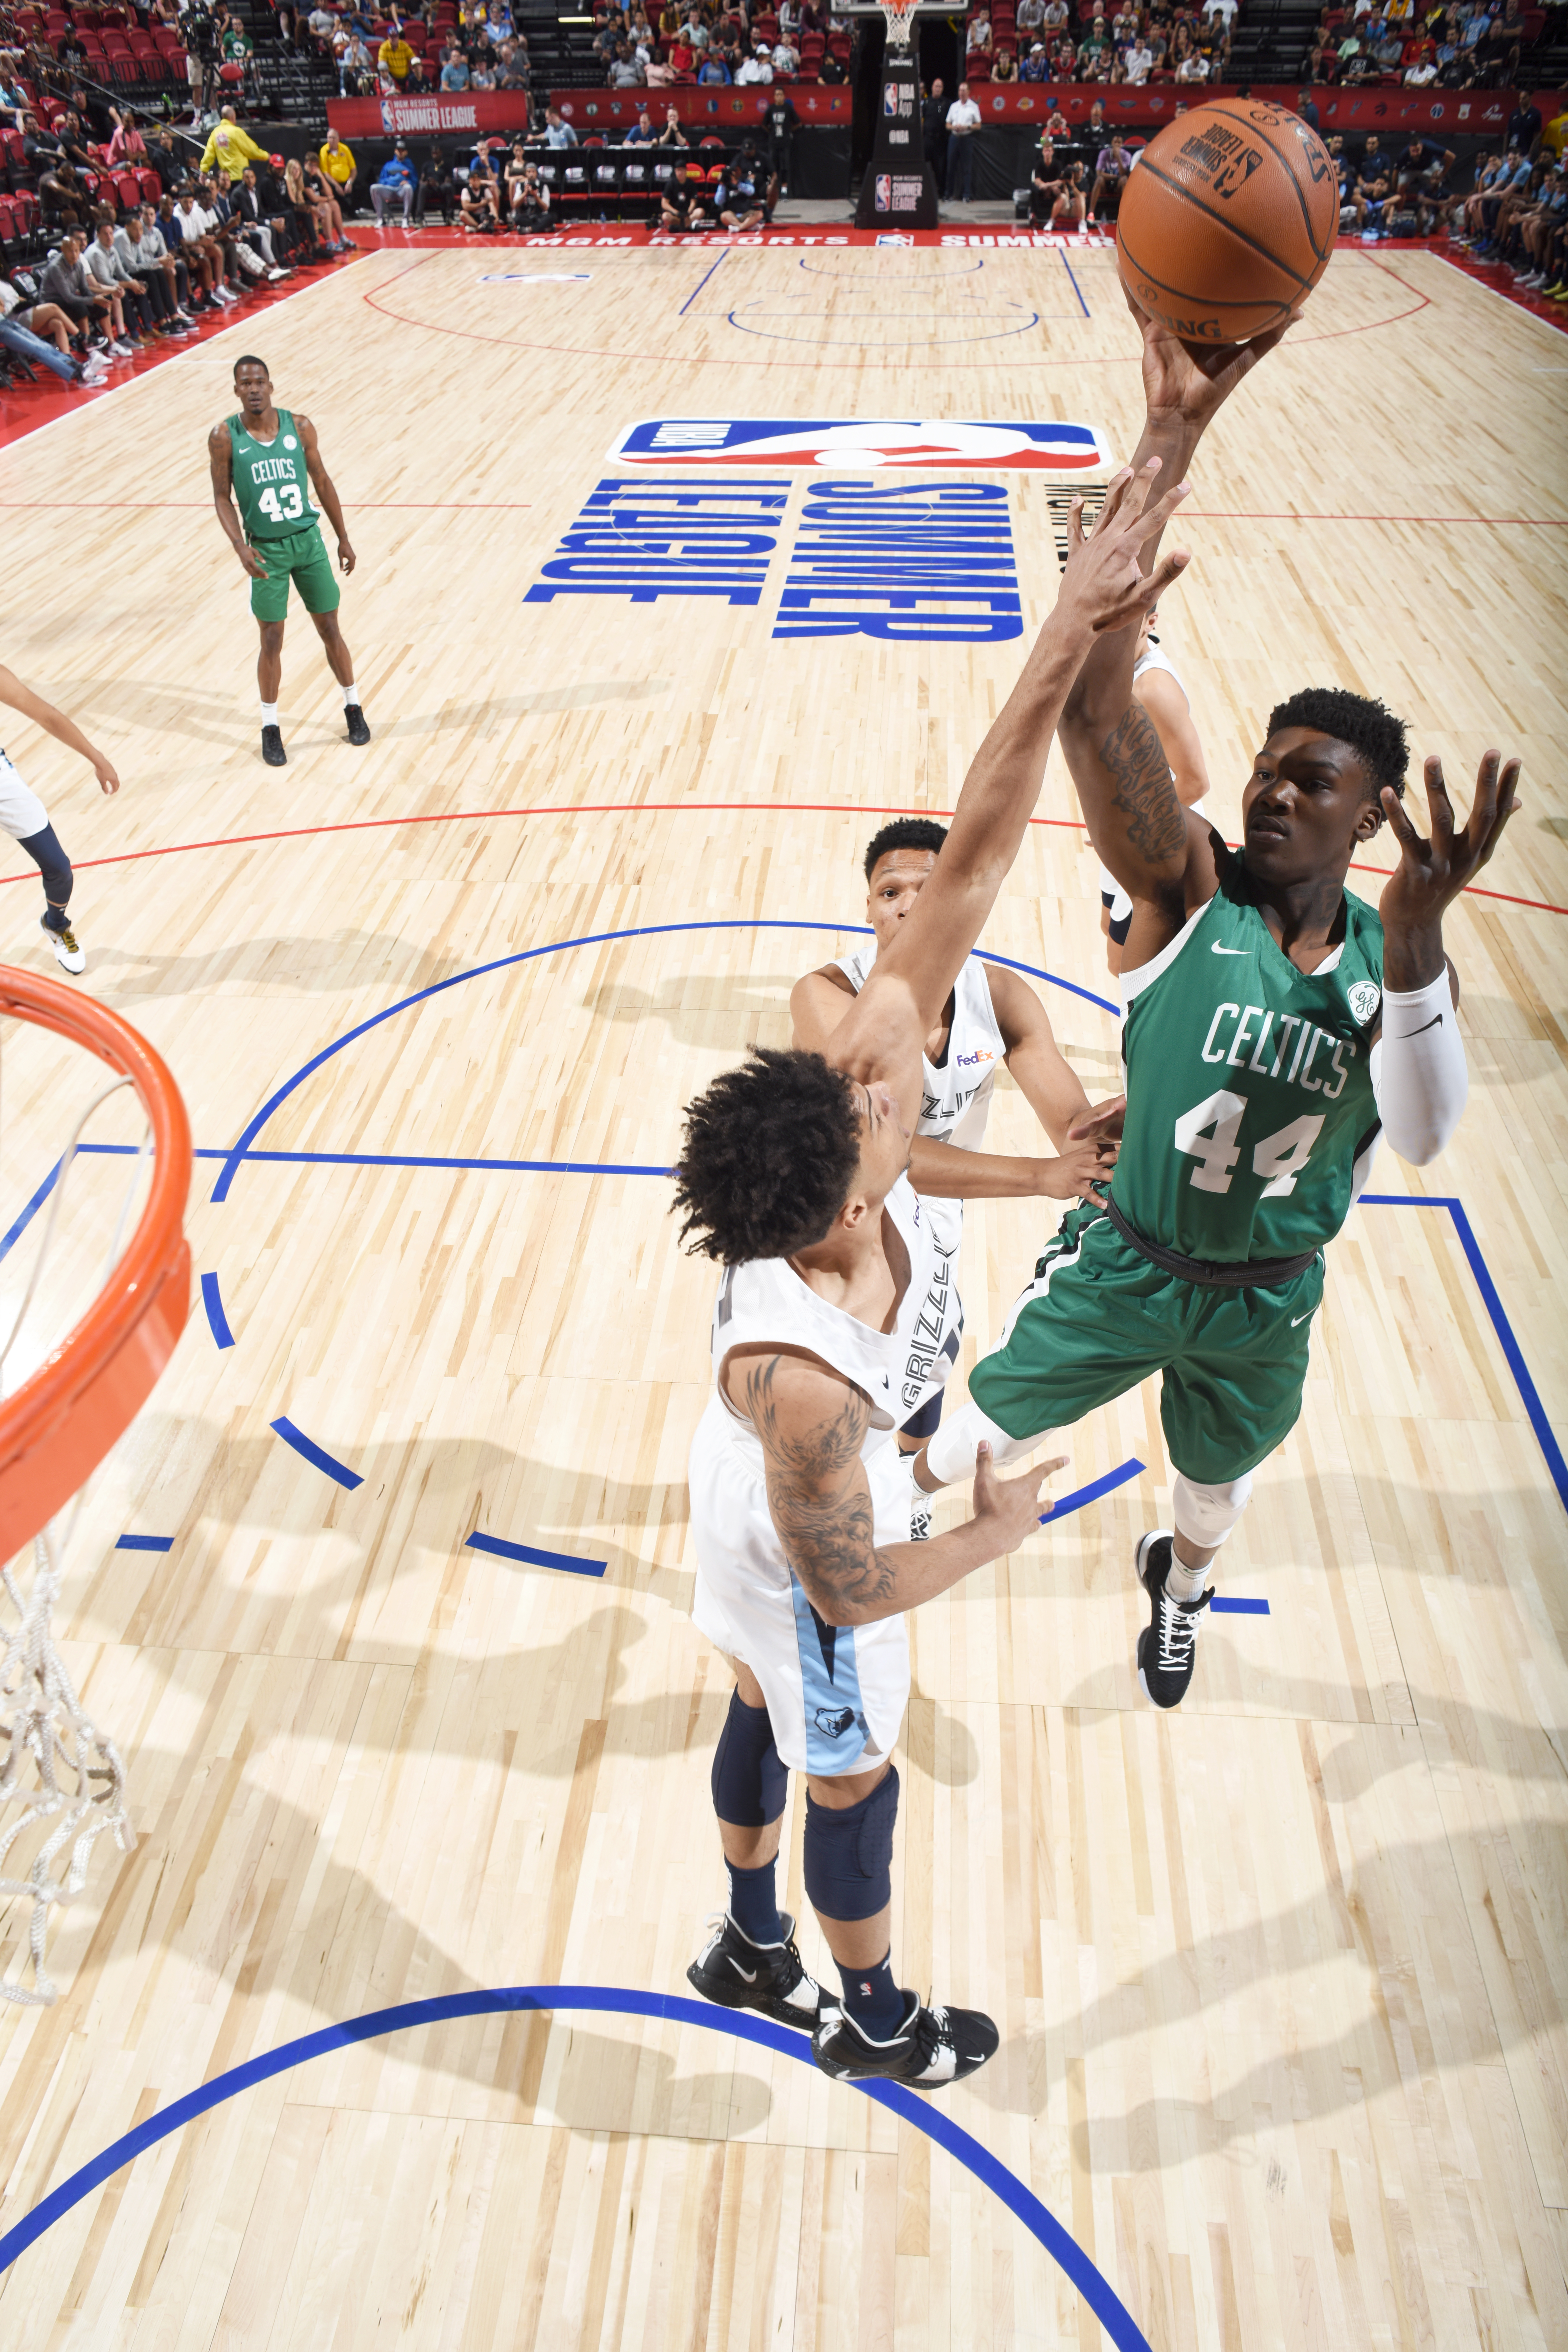 2019 Las Vegas Summer League - Boston Celtics v Memphis Grizzlies